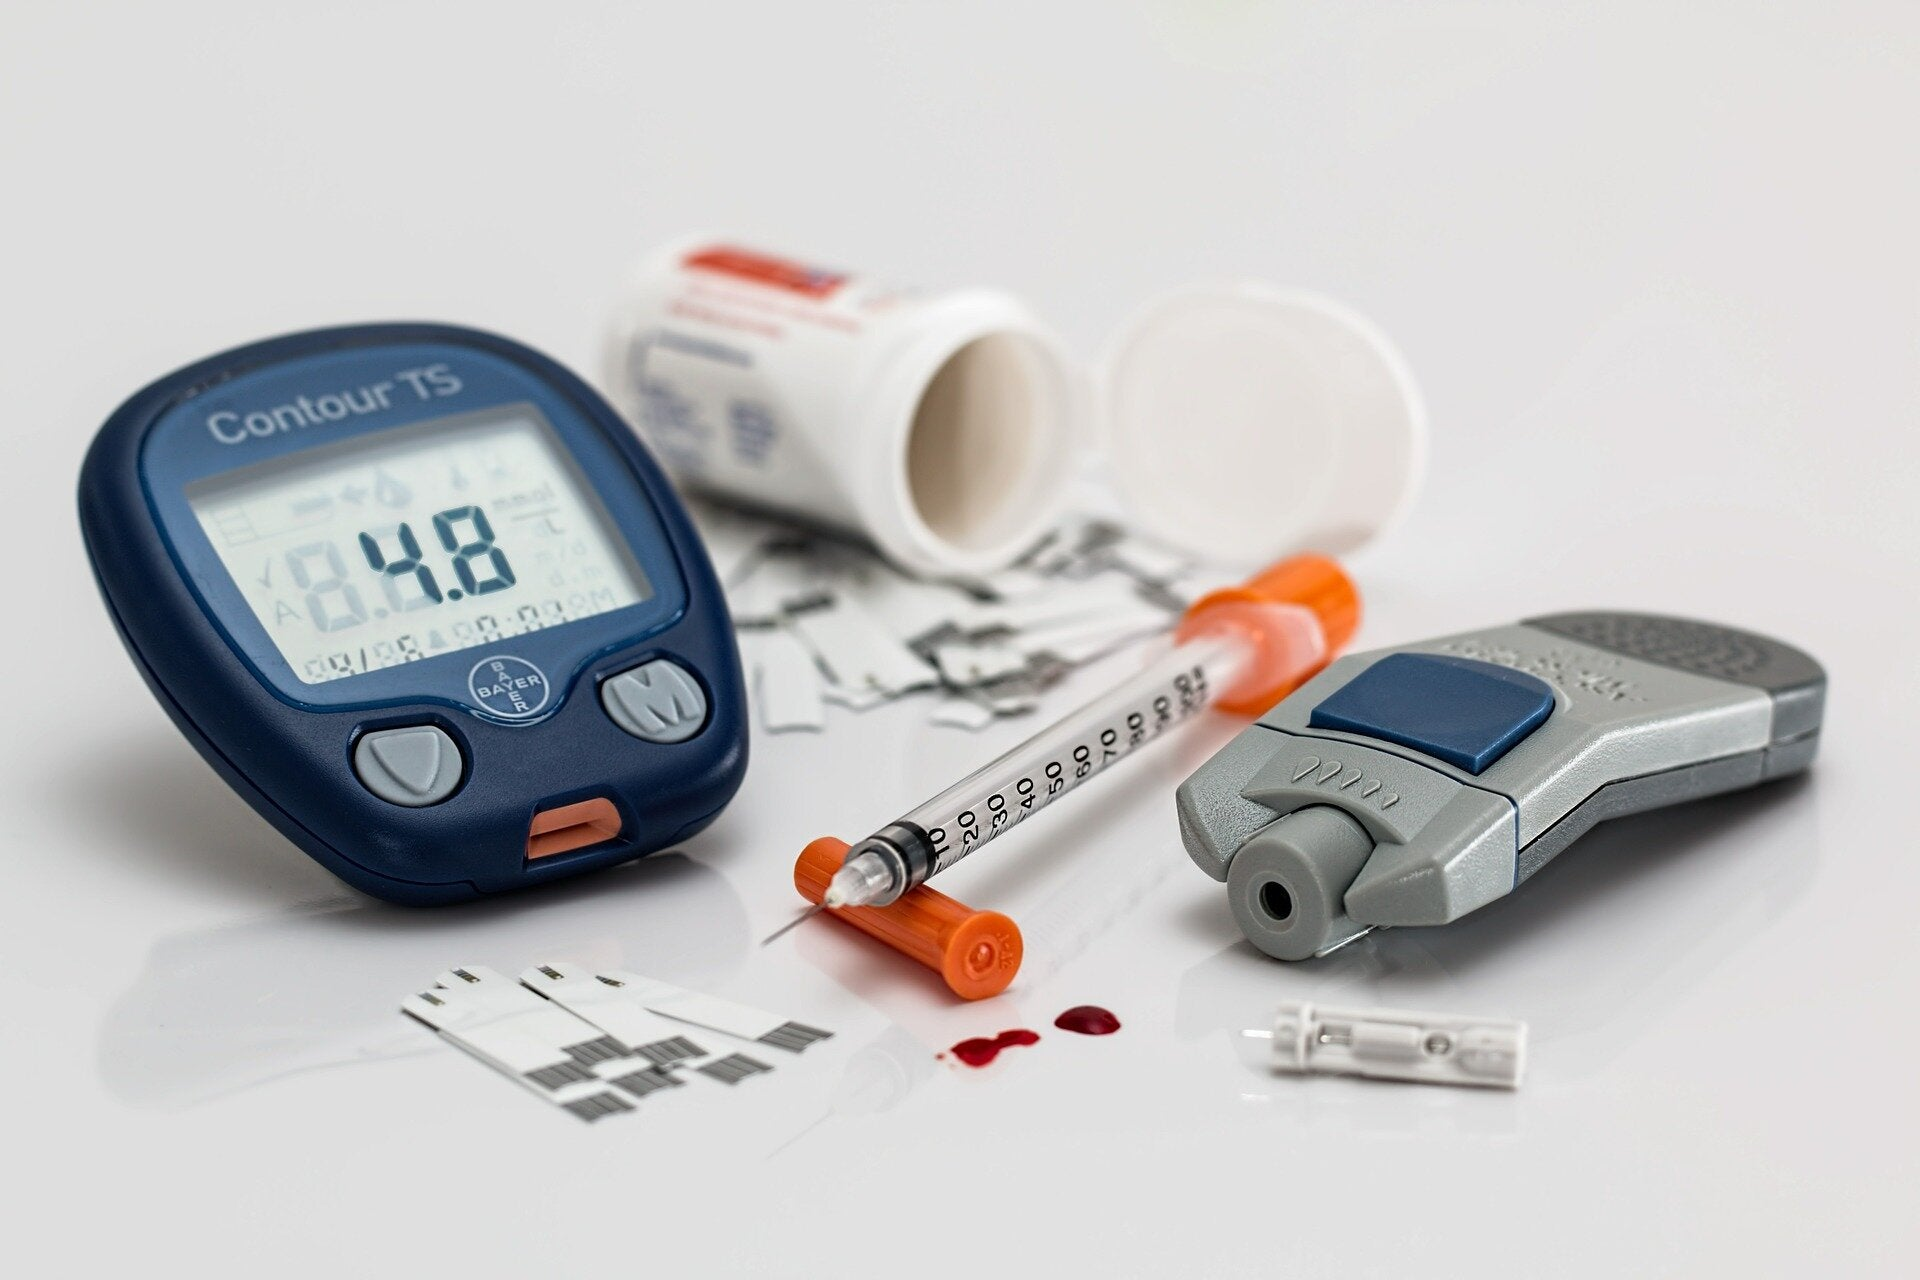 Researchers find strengths and gaps in Thailand diabetes care